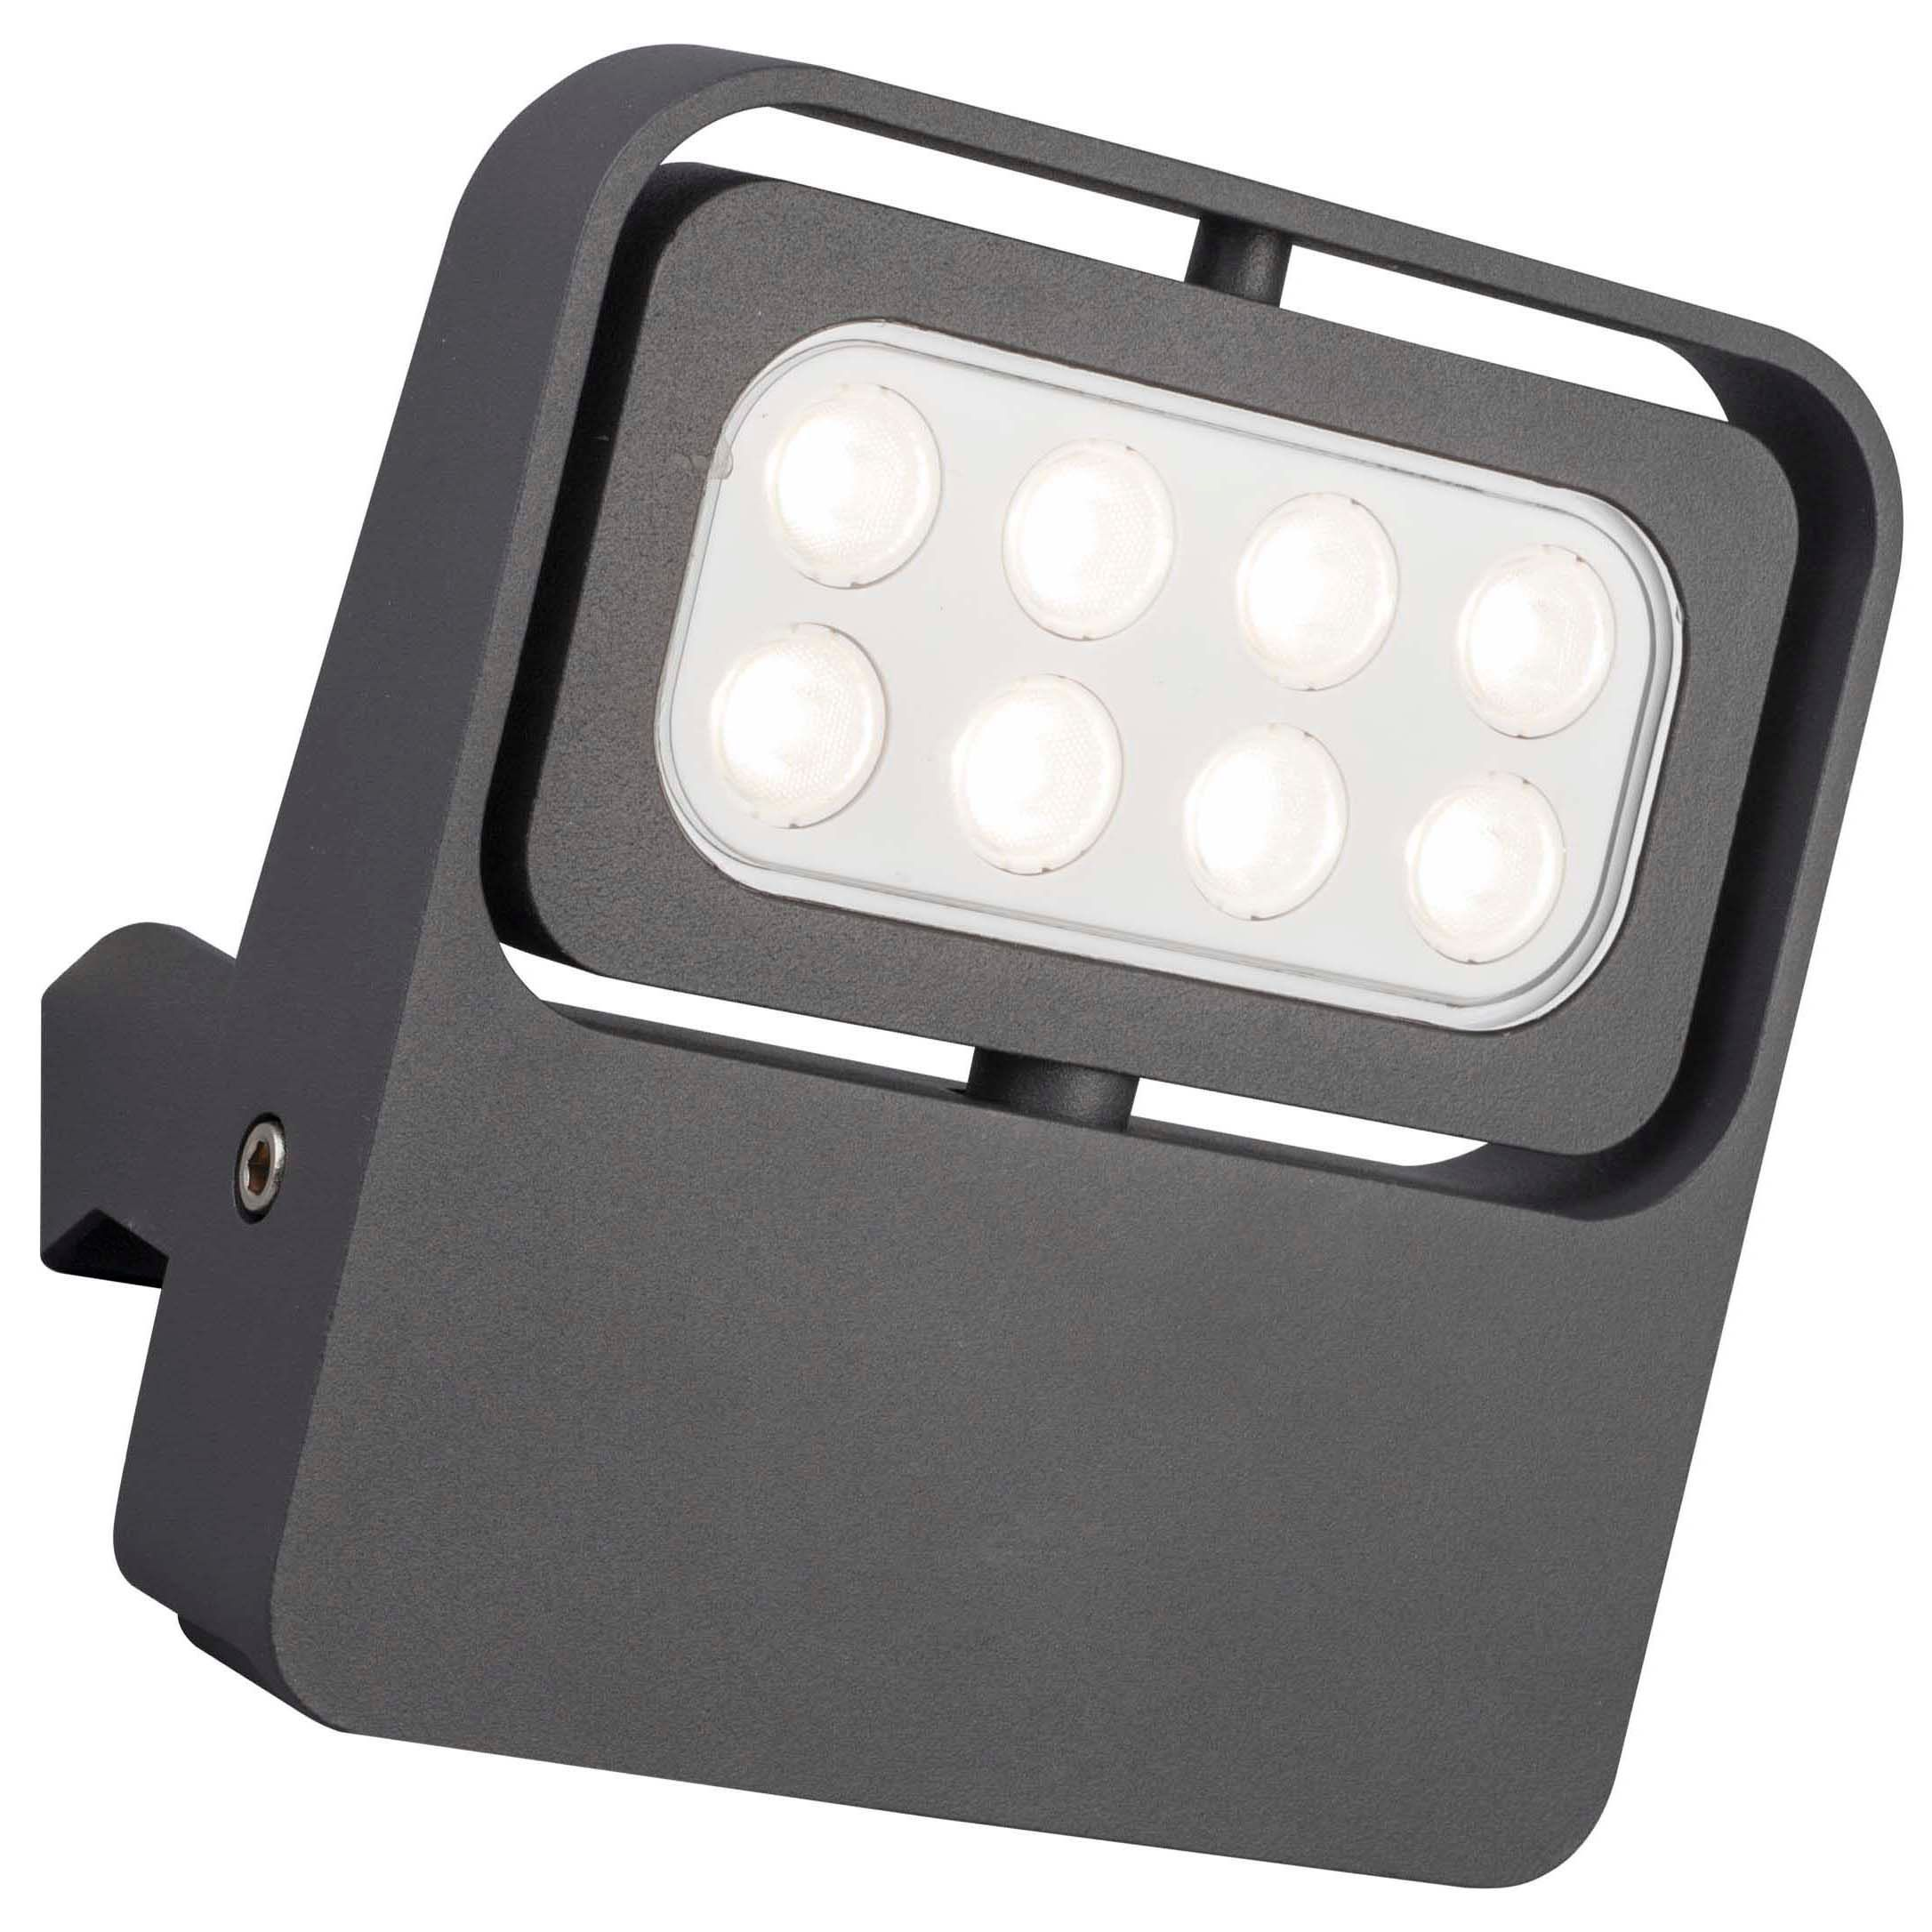 Diy at bq blooma bohm grey 9w mains powered external security flood light cheapraybanclubmaster Image collections